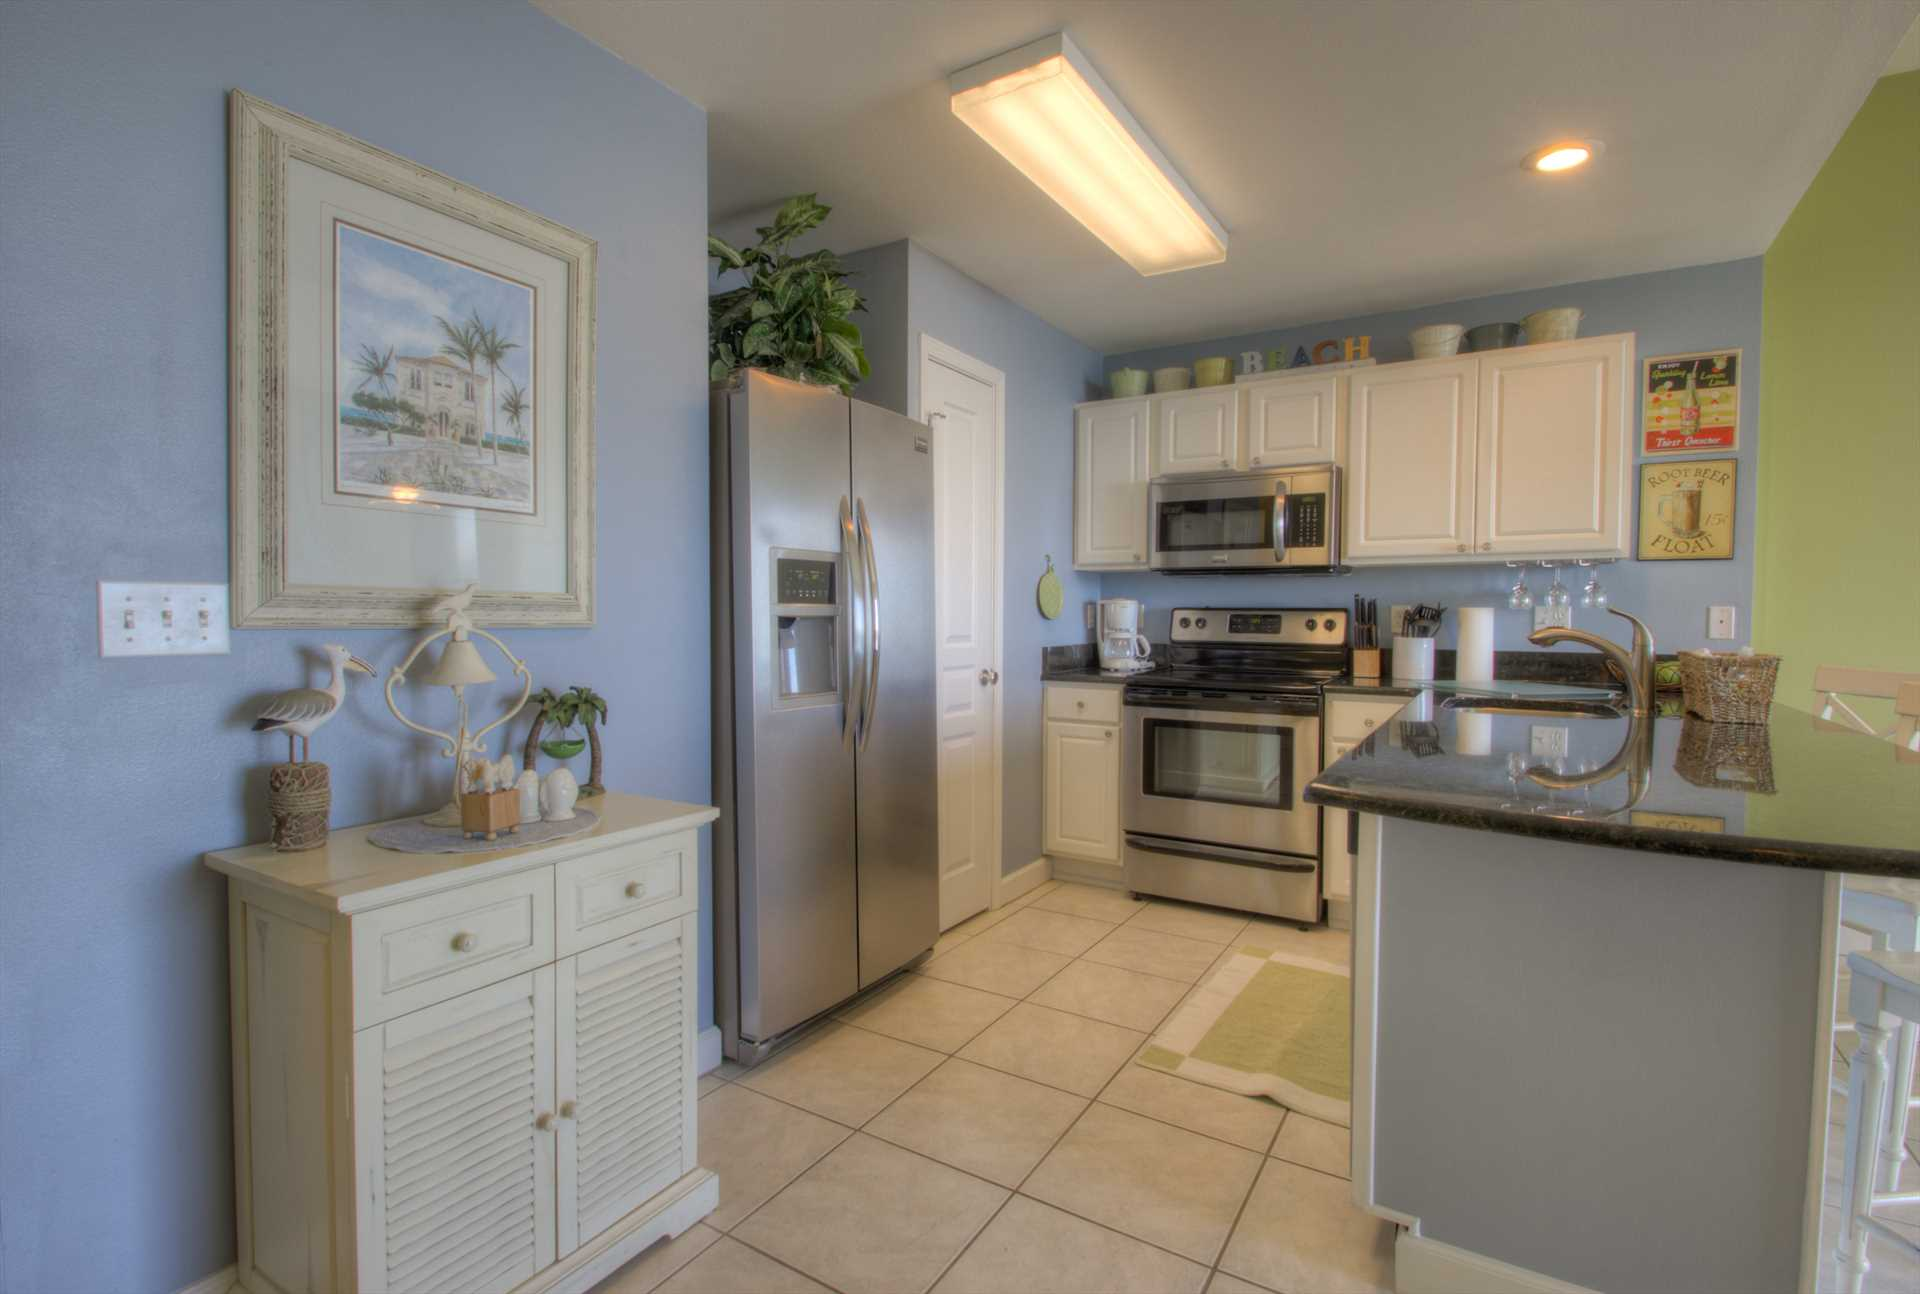 An updated and fully equipped kitchen